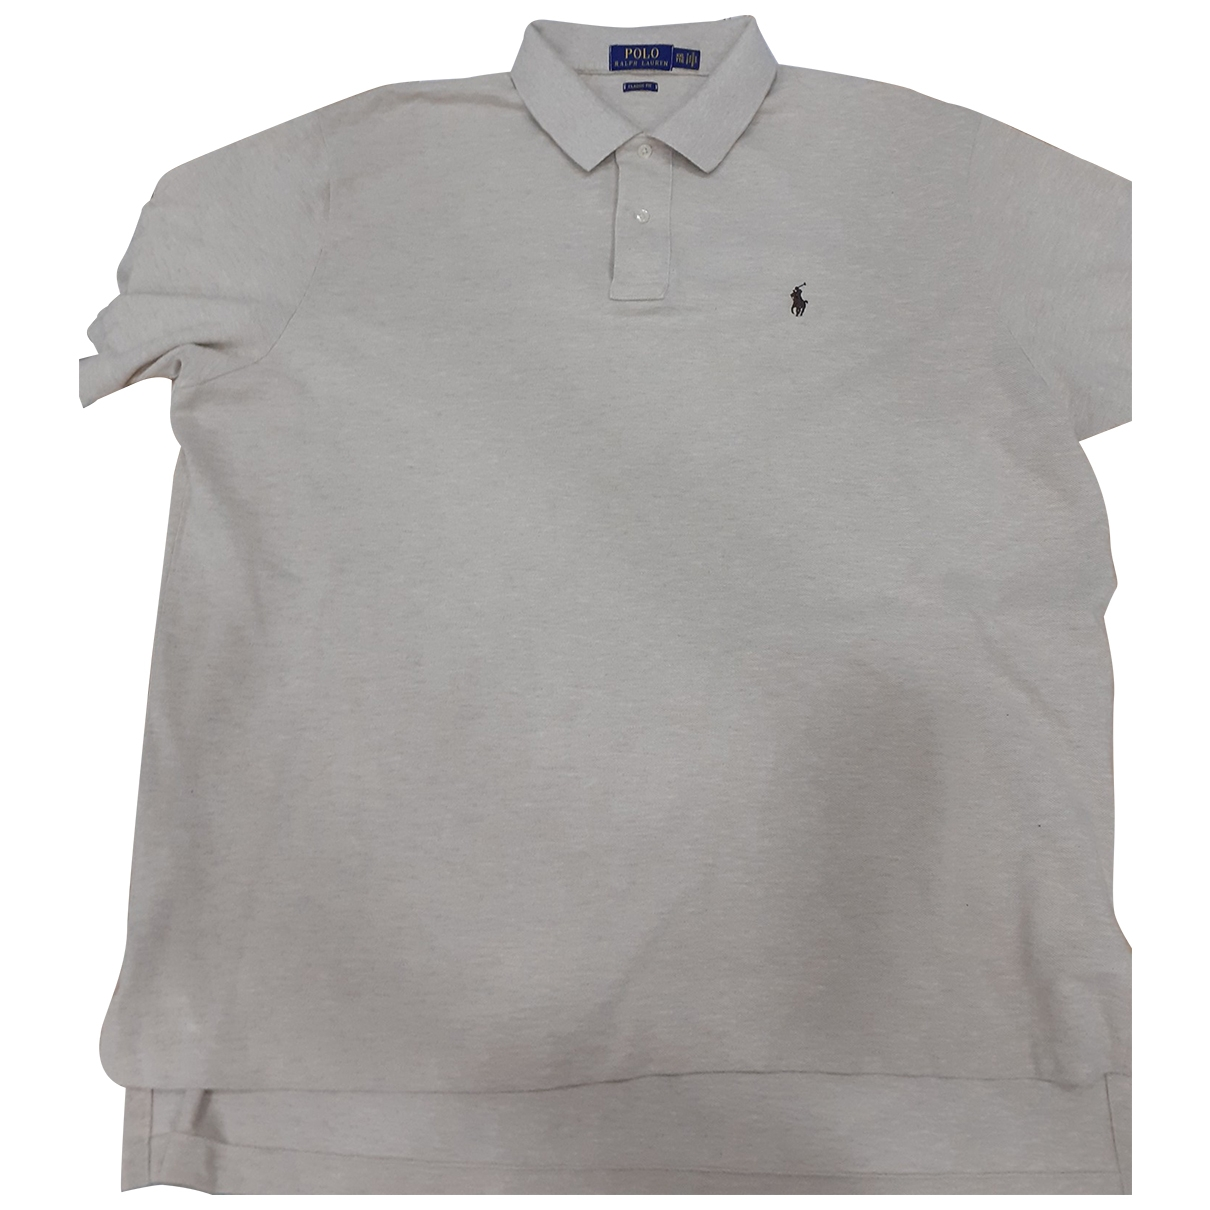 Polo Ralph Lauren Polo classique manches courtes Poloshirts in  Beige Baumwolle